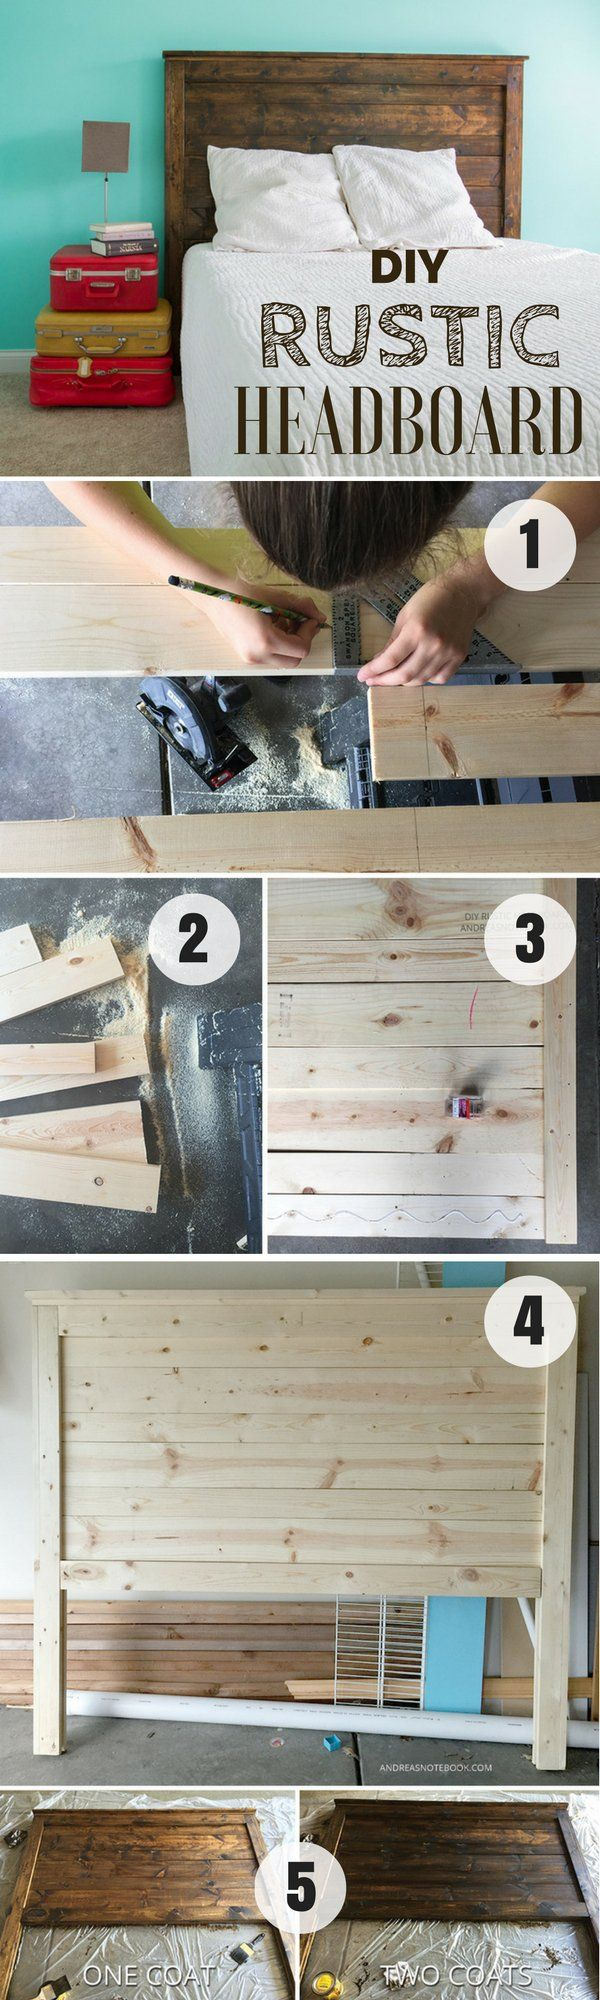 Rustic bed headboard - 15 Easy Diy Headboard Ideas You Should Try Rustic Headboardsheadboard Ideasdiy Bedbedroom